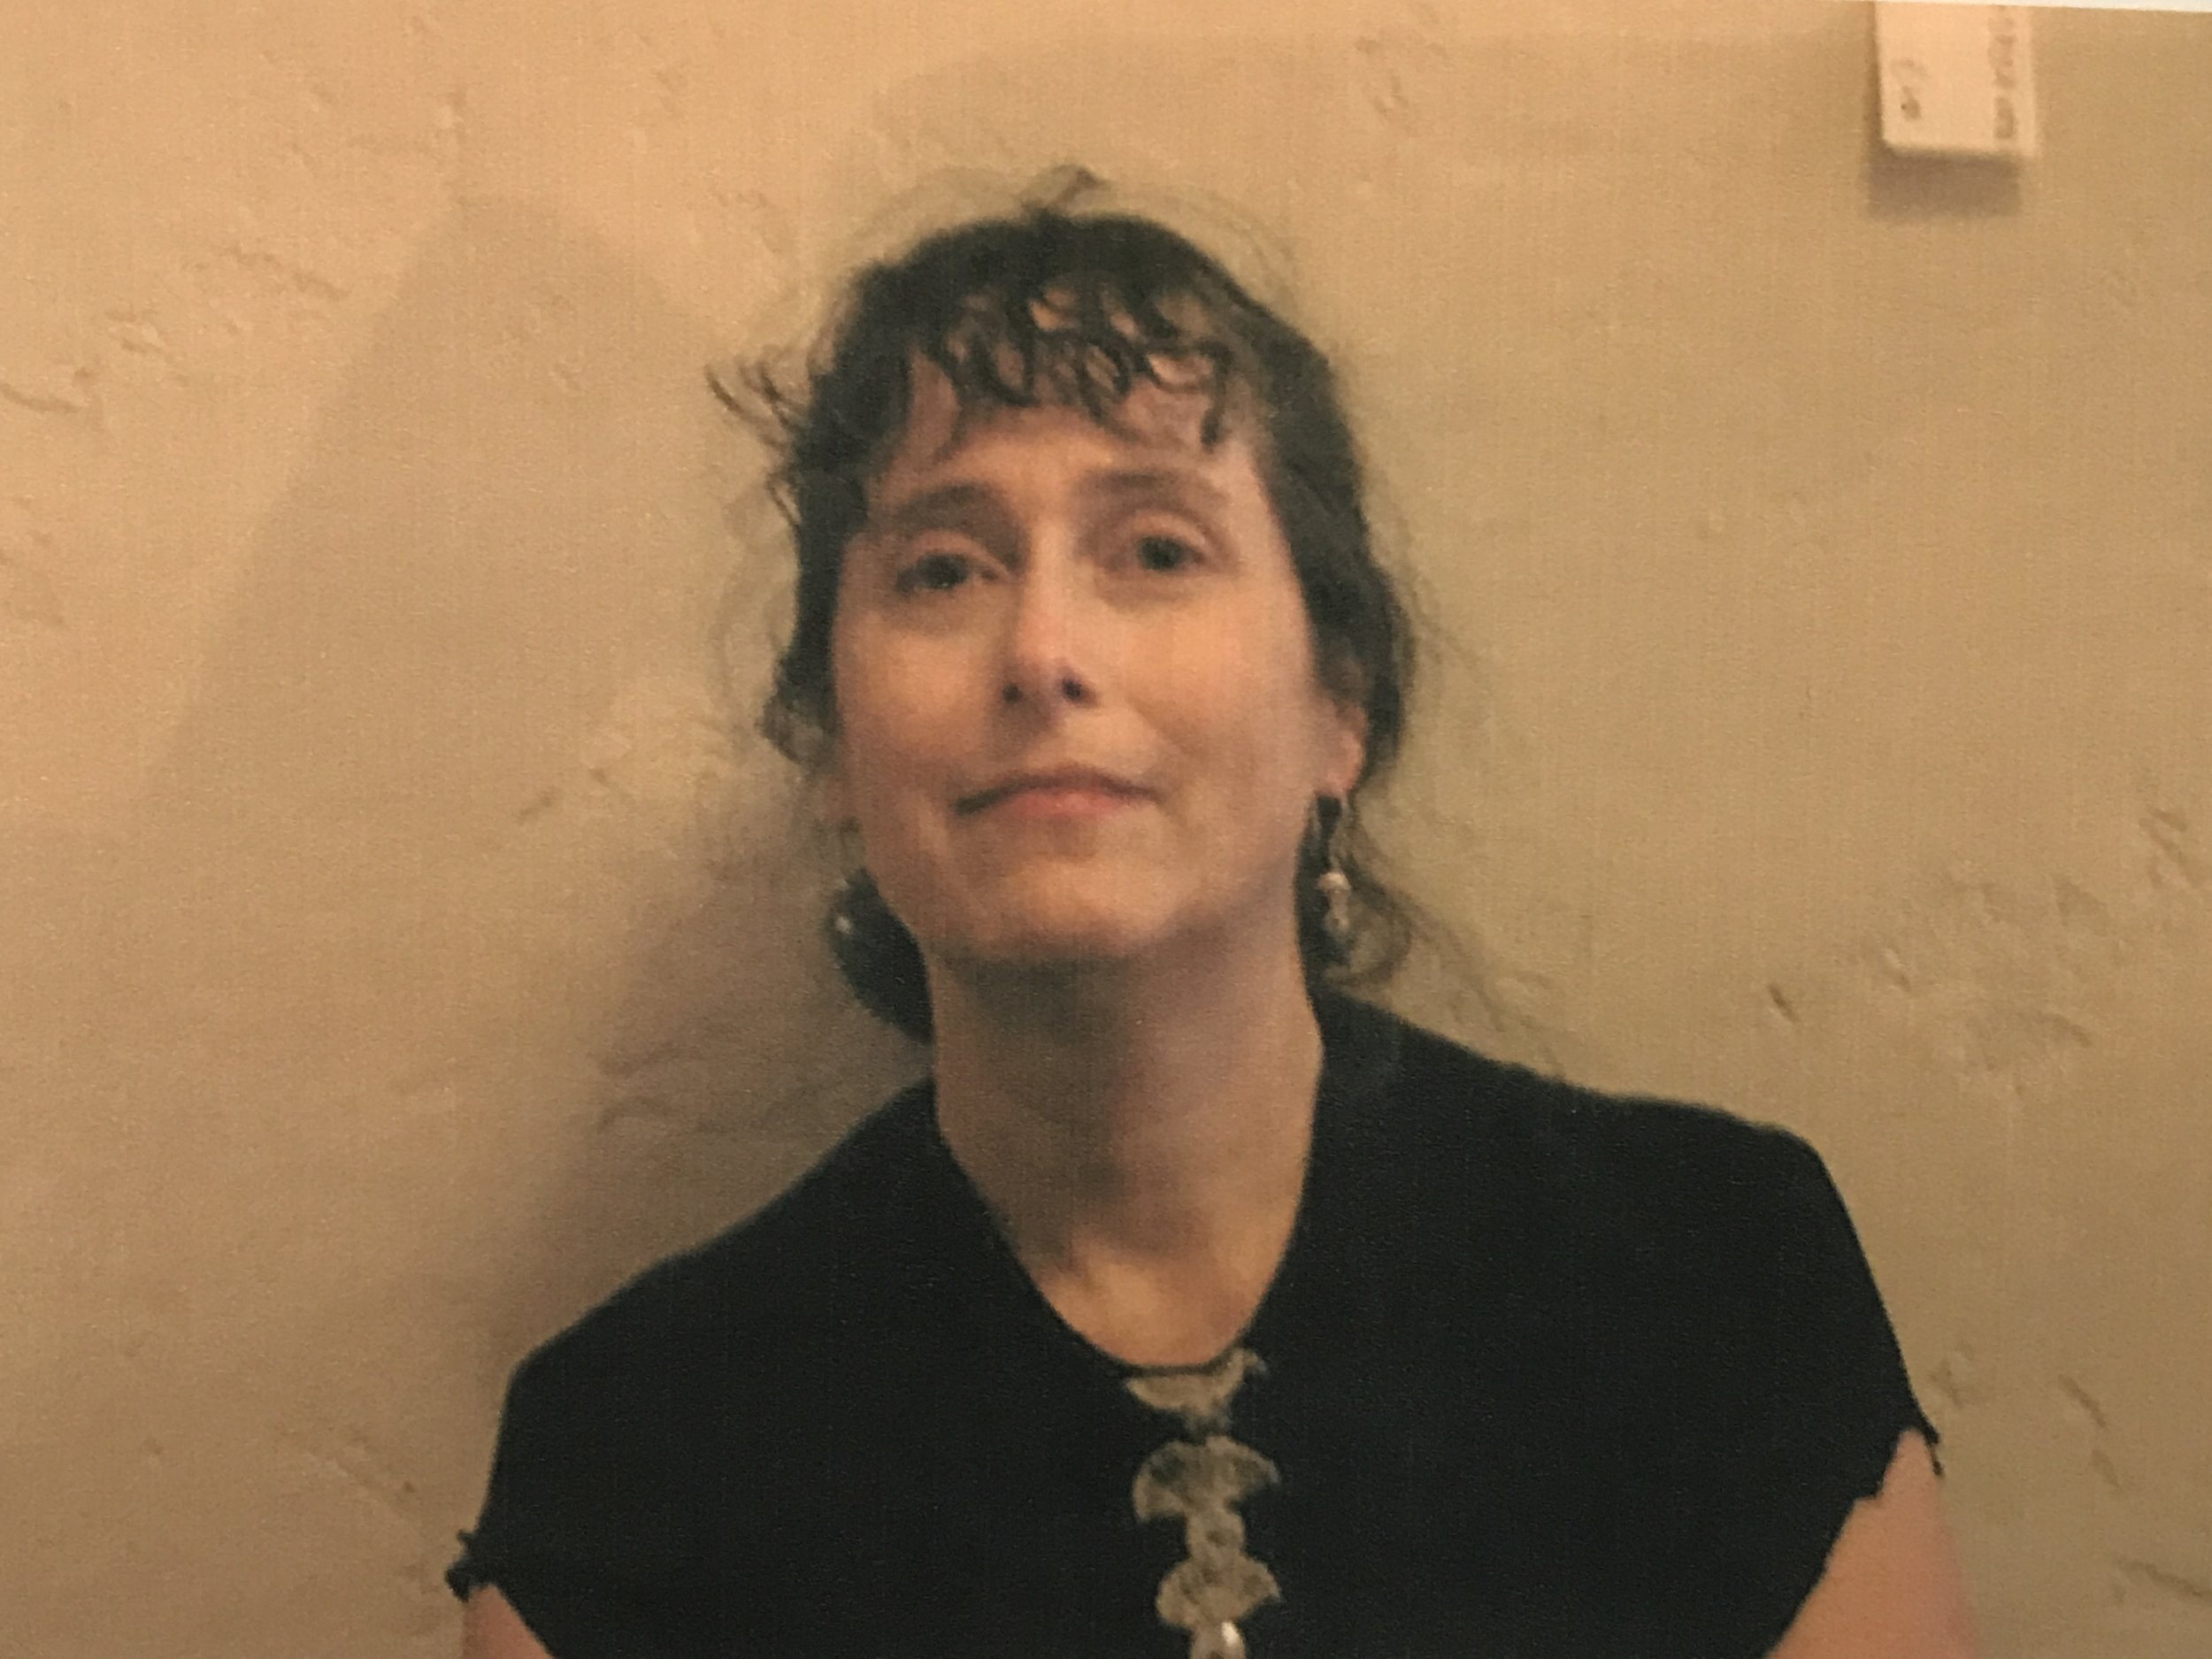 Carolyn Gowdy  I was born in Seattle, USA. Now live in London. My Suffolk connection is as a former Artist in Residence of Aldeburgh Beach Lookout and honorary member of Arts Club Aldeburgh Beach